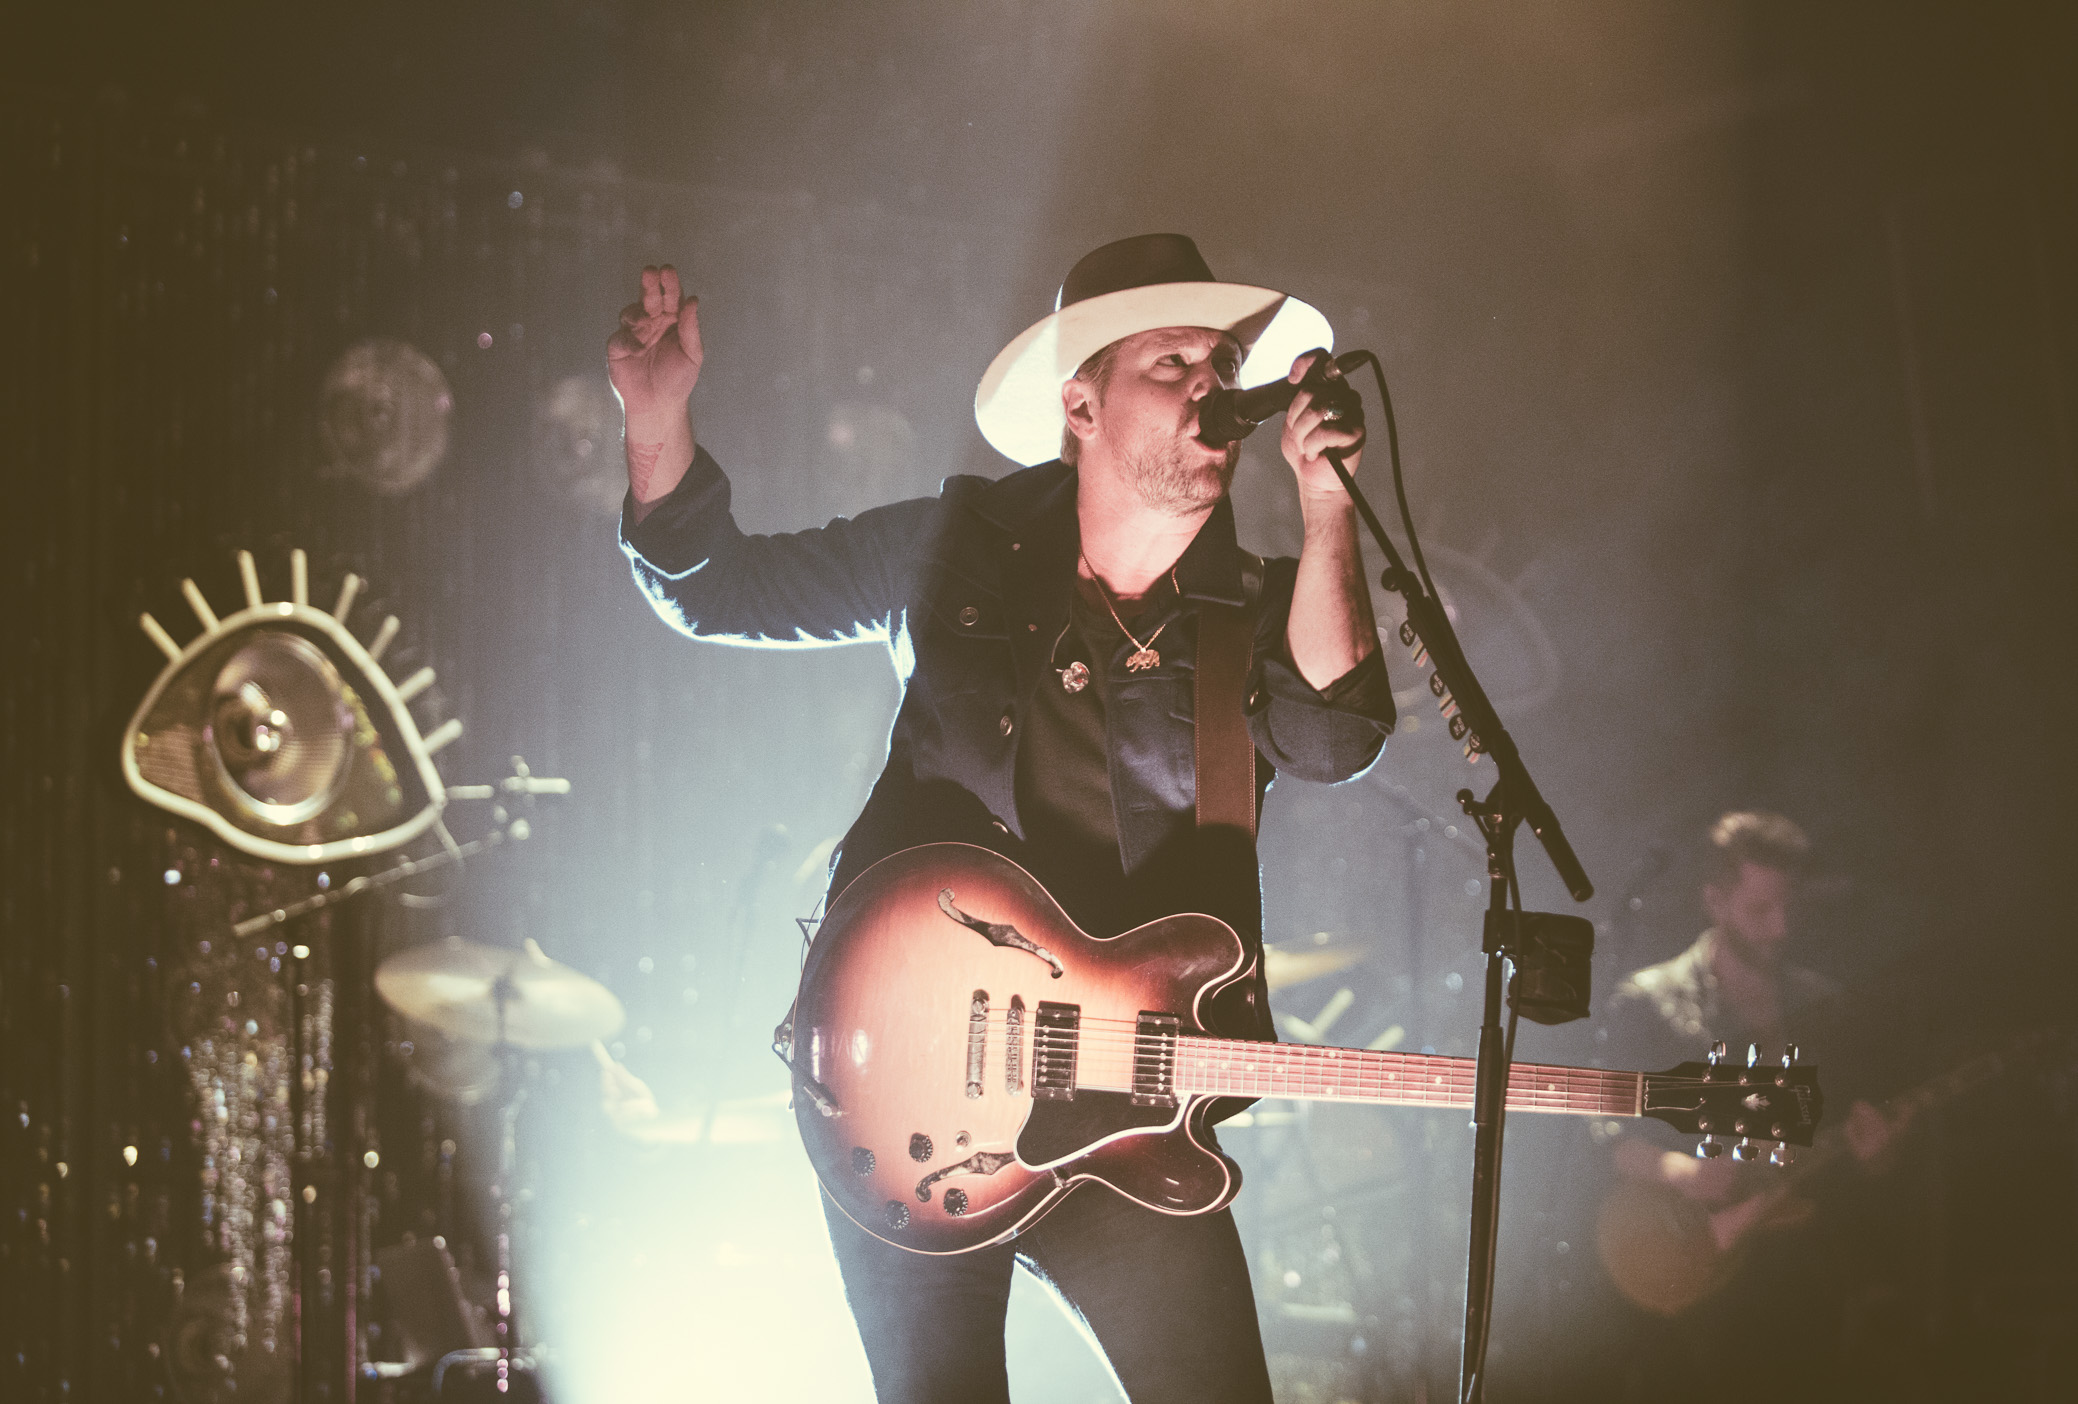 Bear Reinhart of NEEDTOBREATHE performs at The Alabama Theatre in Birmingham, Alabama on October 10th, 2017. (Photo by David A. Smith/DSmithScenes)